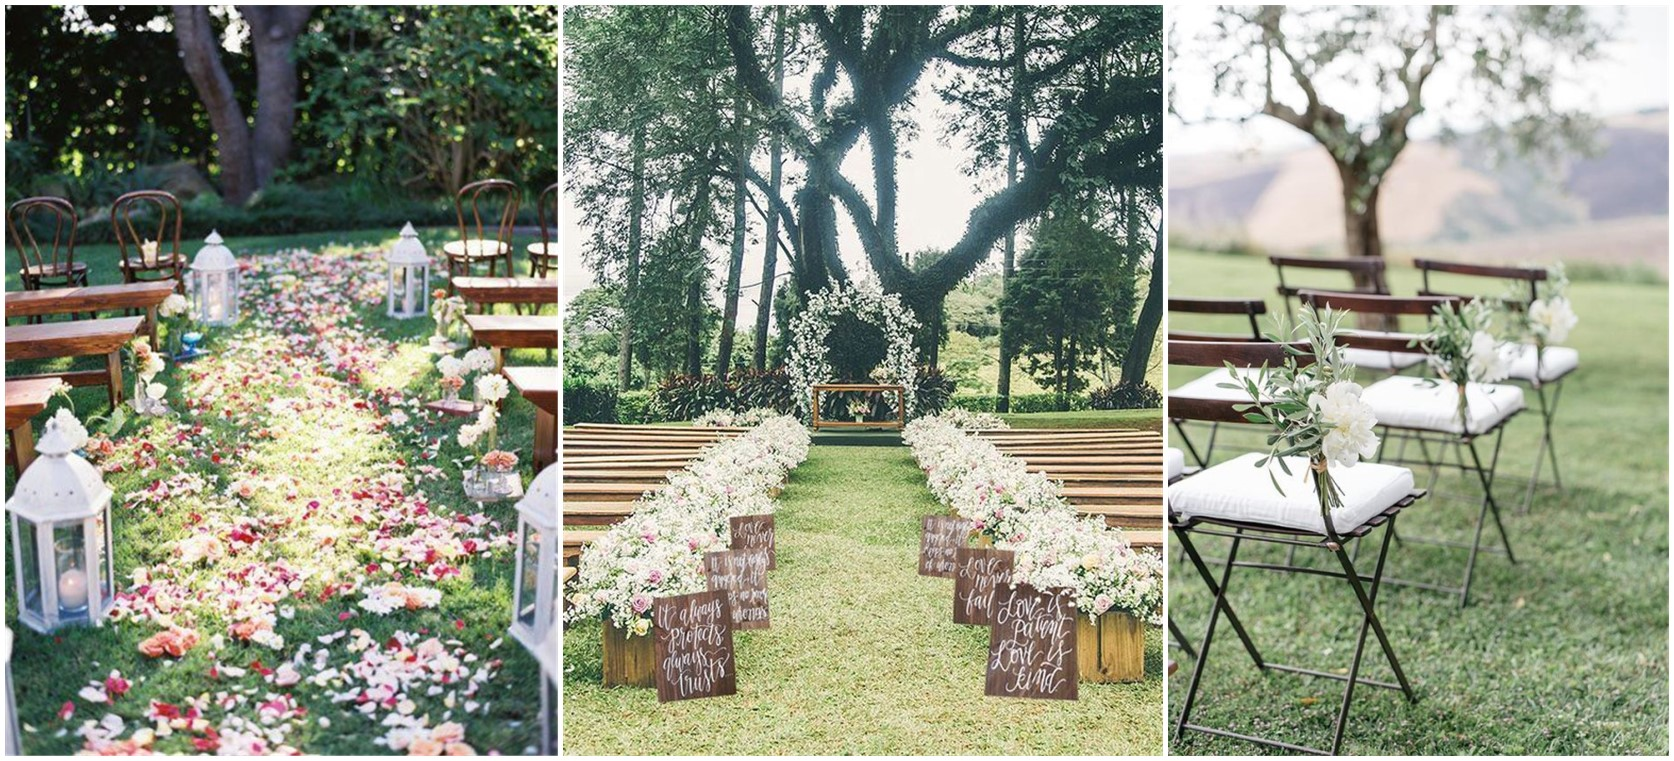 25 rustic outdoor wedding ceremony decorations ideas for Decorating for outdoor wedding